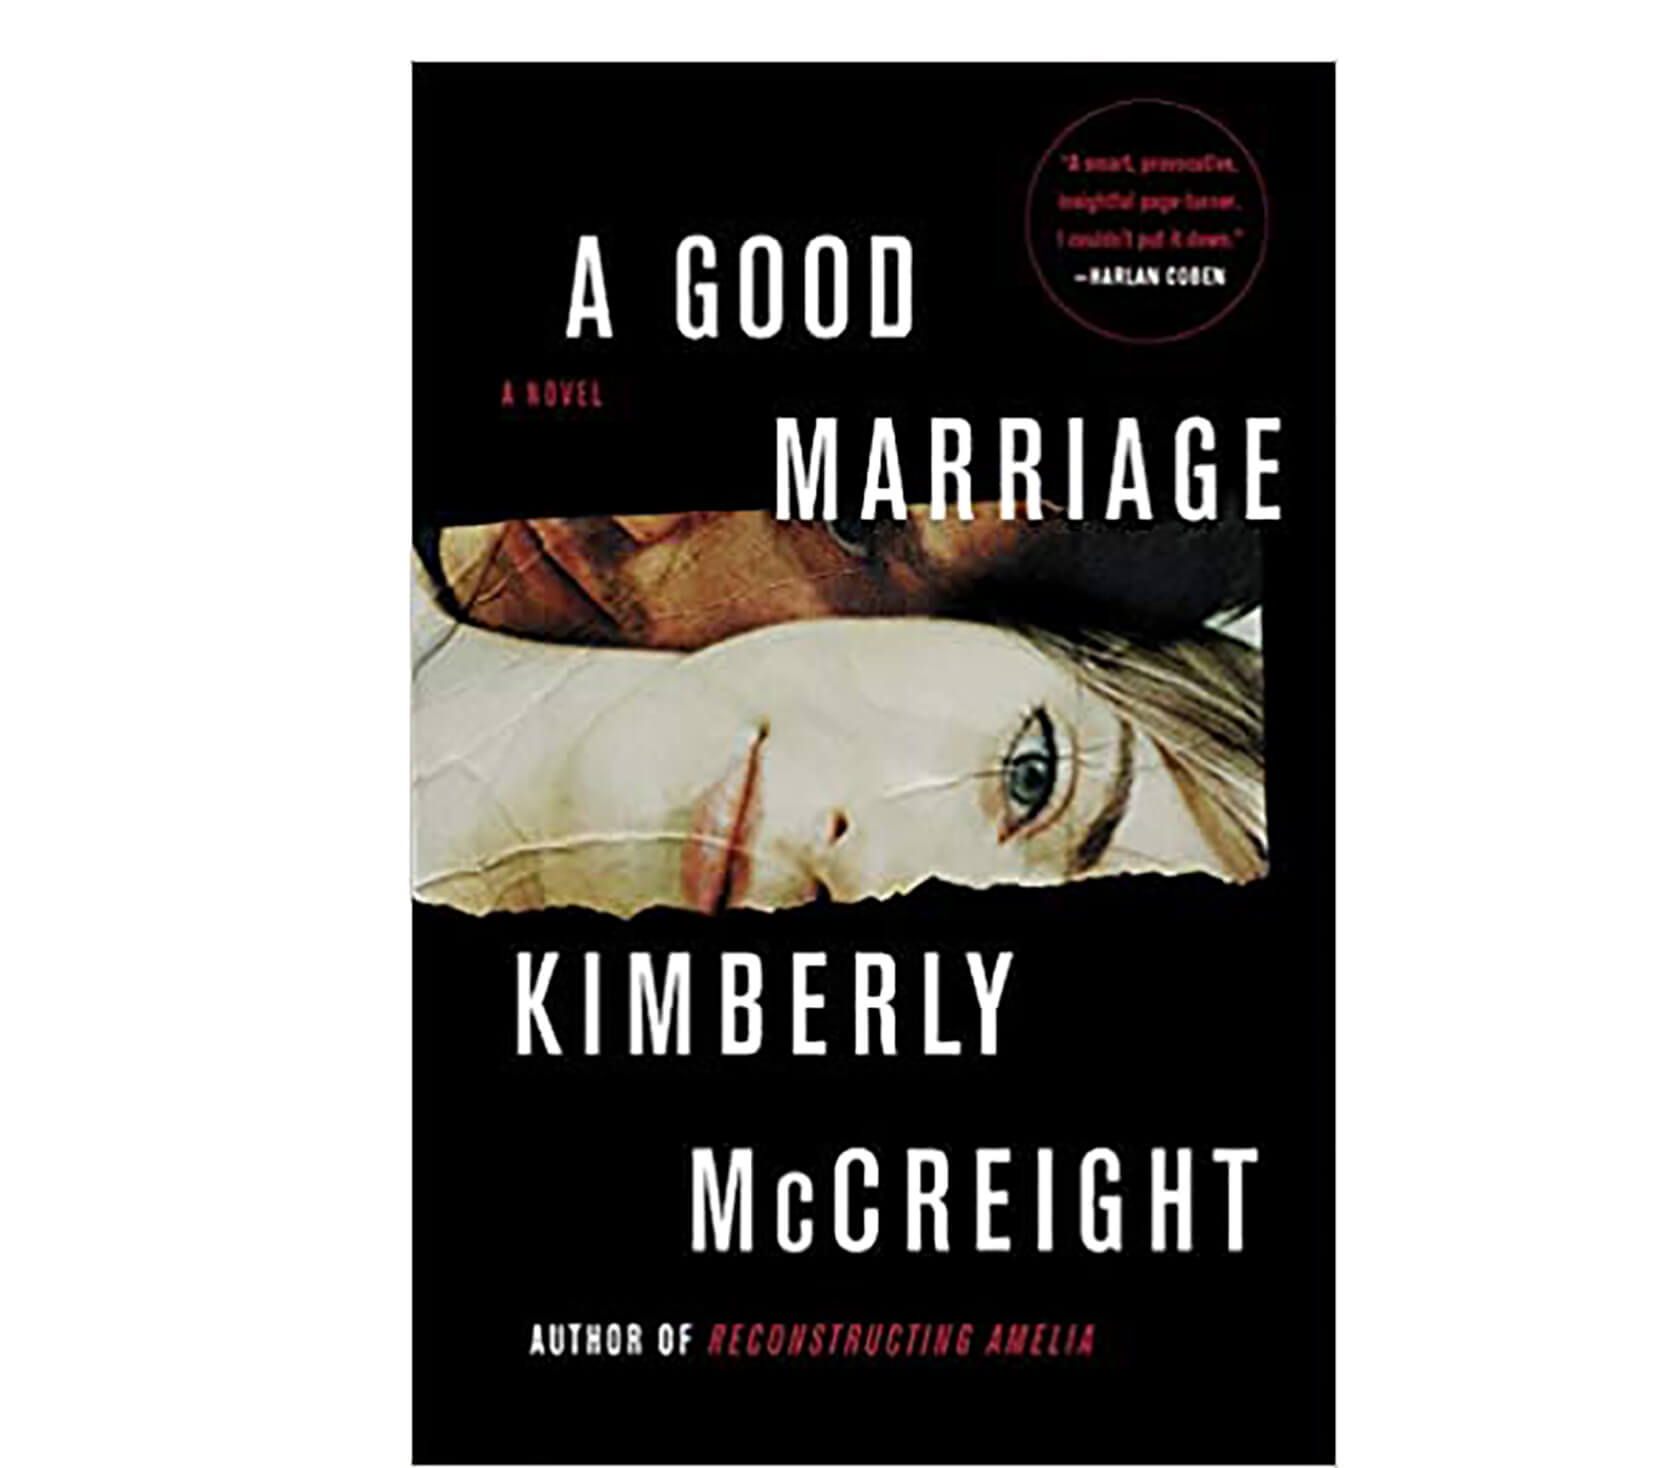 Sydne Style reviews a good marriage for best suspense reads